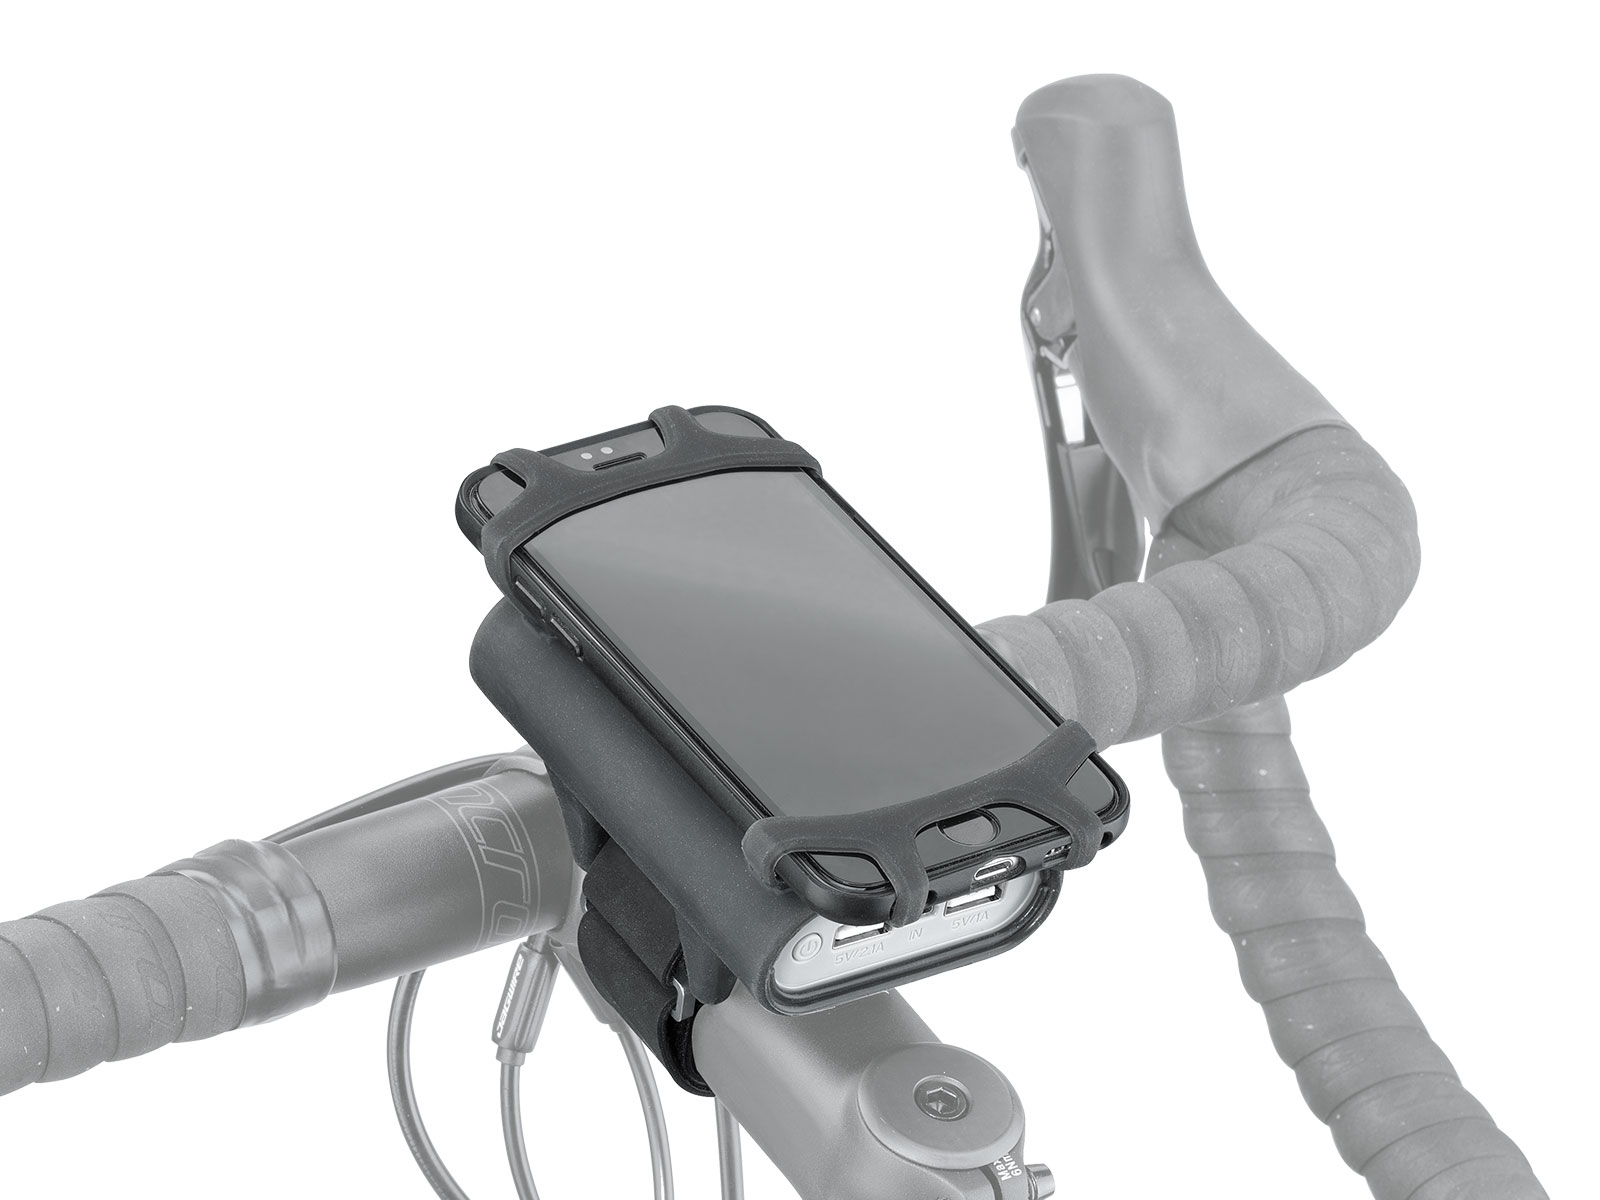 SMARTPHONE HOLDER WITH POWERPACK 7800 MAH | Topeak